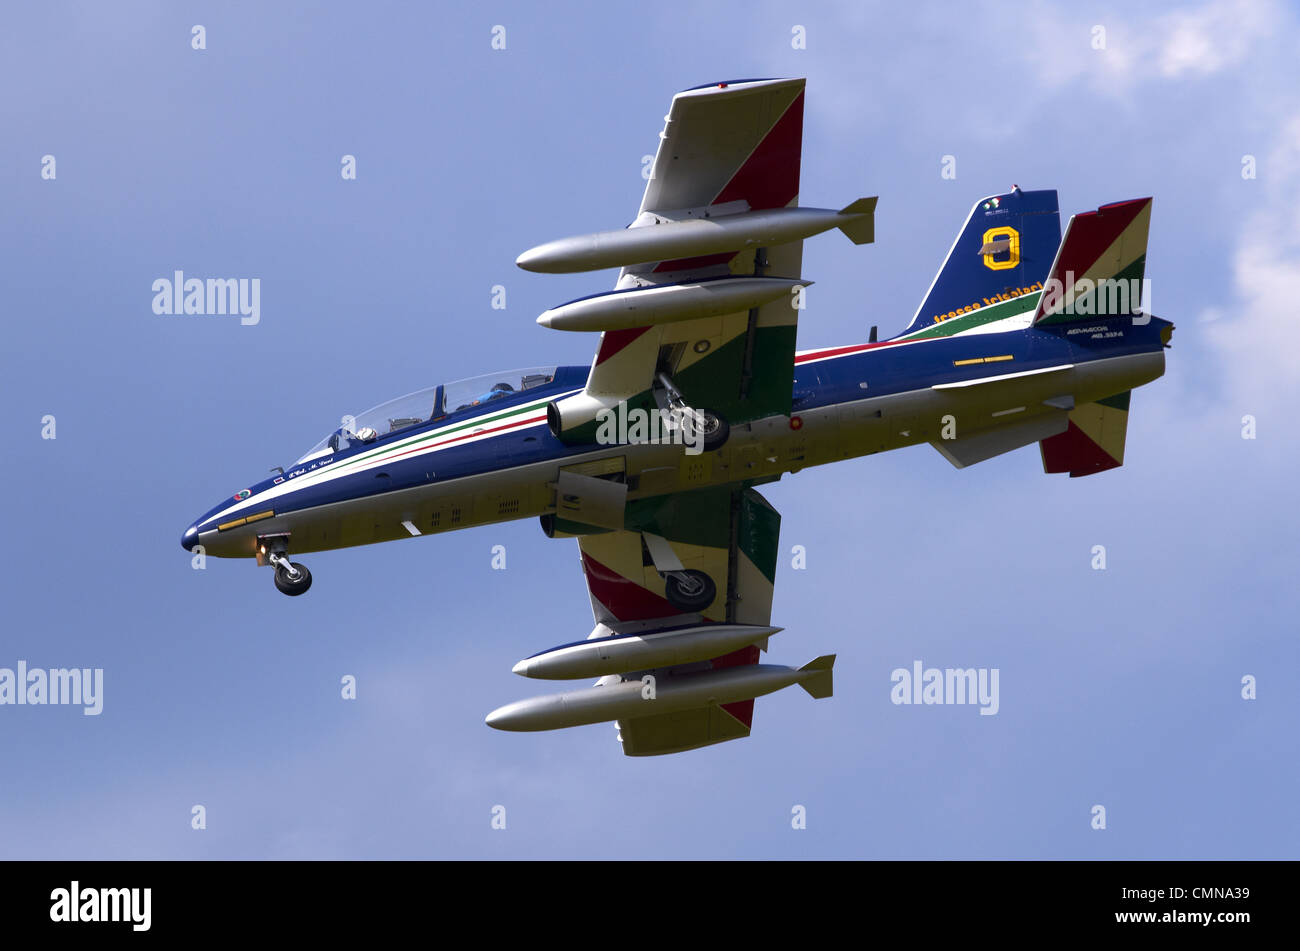 Aermacchi MB-339 operated by the Frecce Tricolori on final approach for landing at RAF Fairford Stock Photo